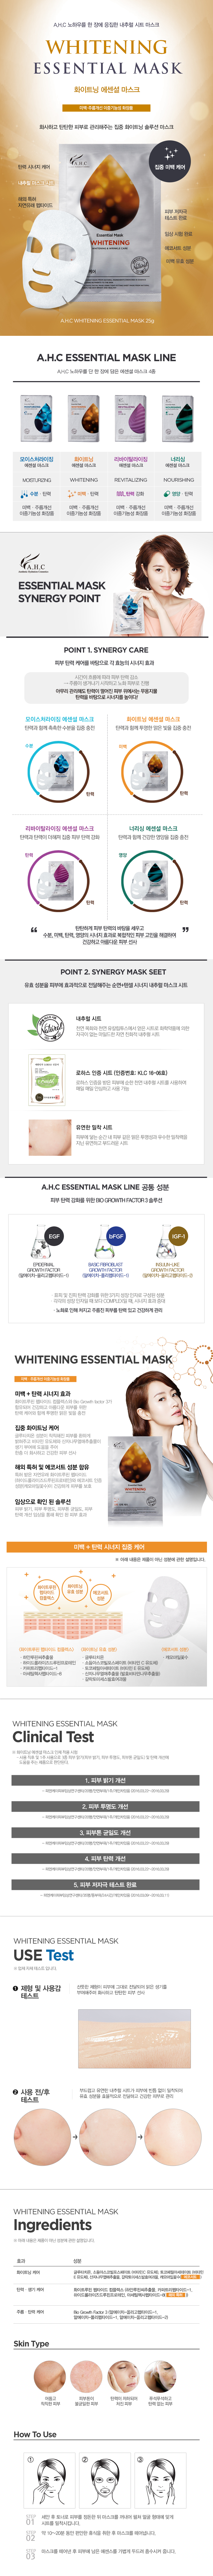 AHC Whitening Essential Mask 25g x 25ea malaysia singapore indonesia